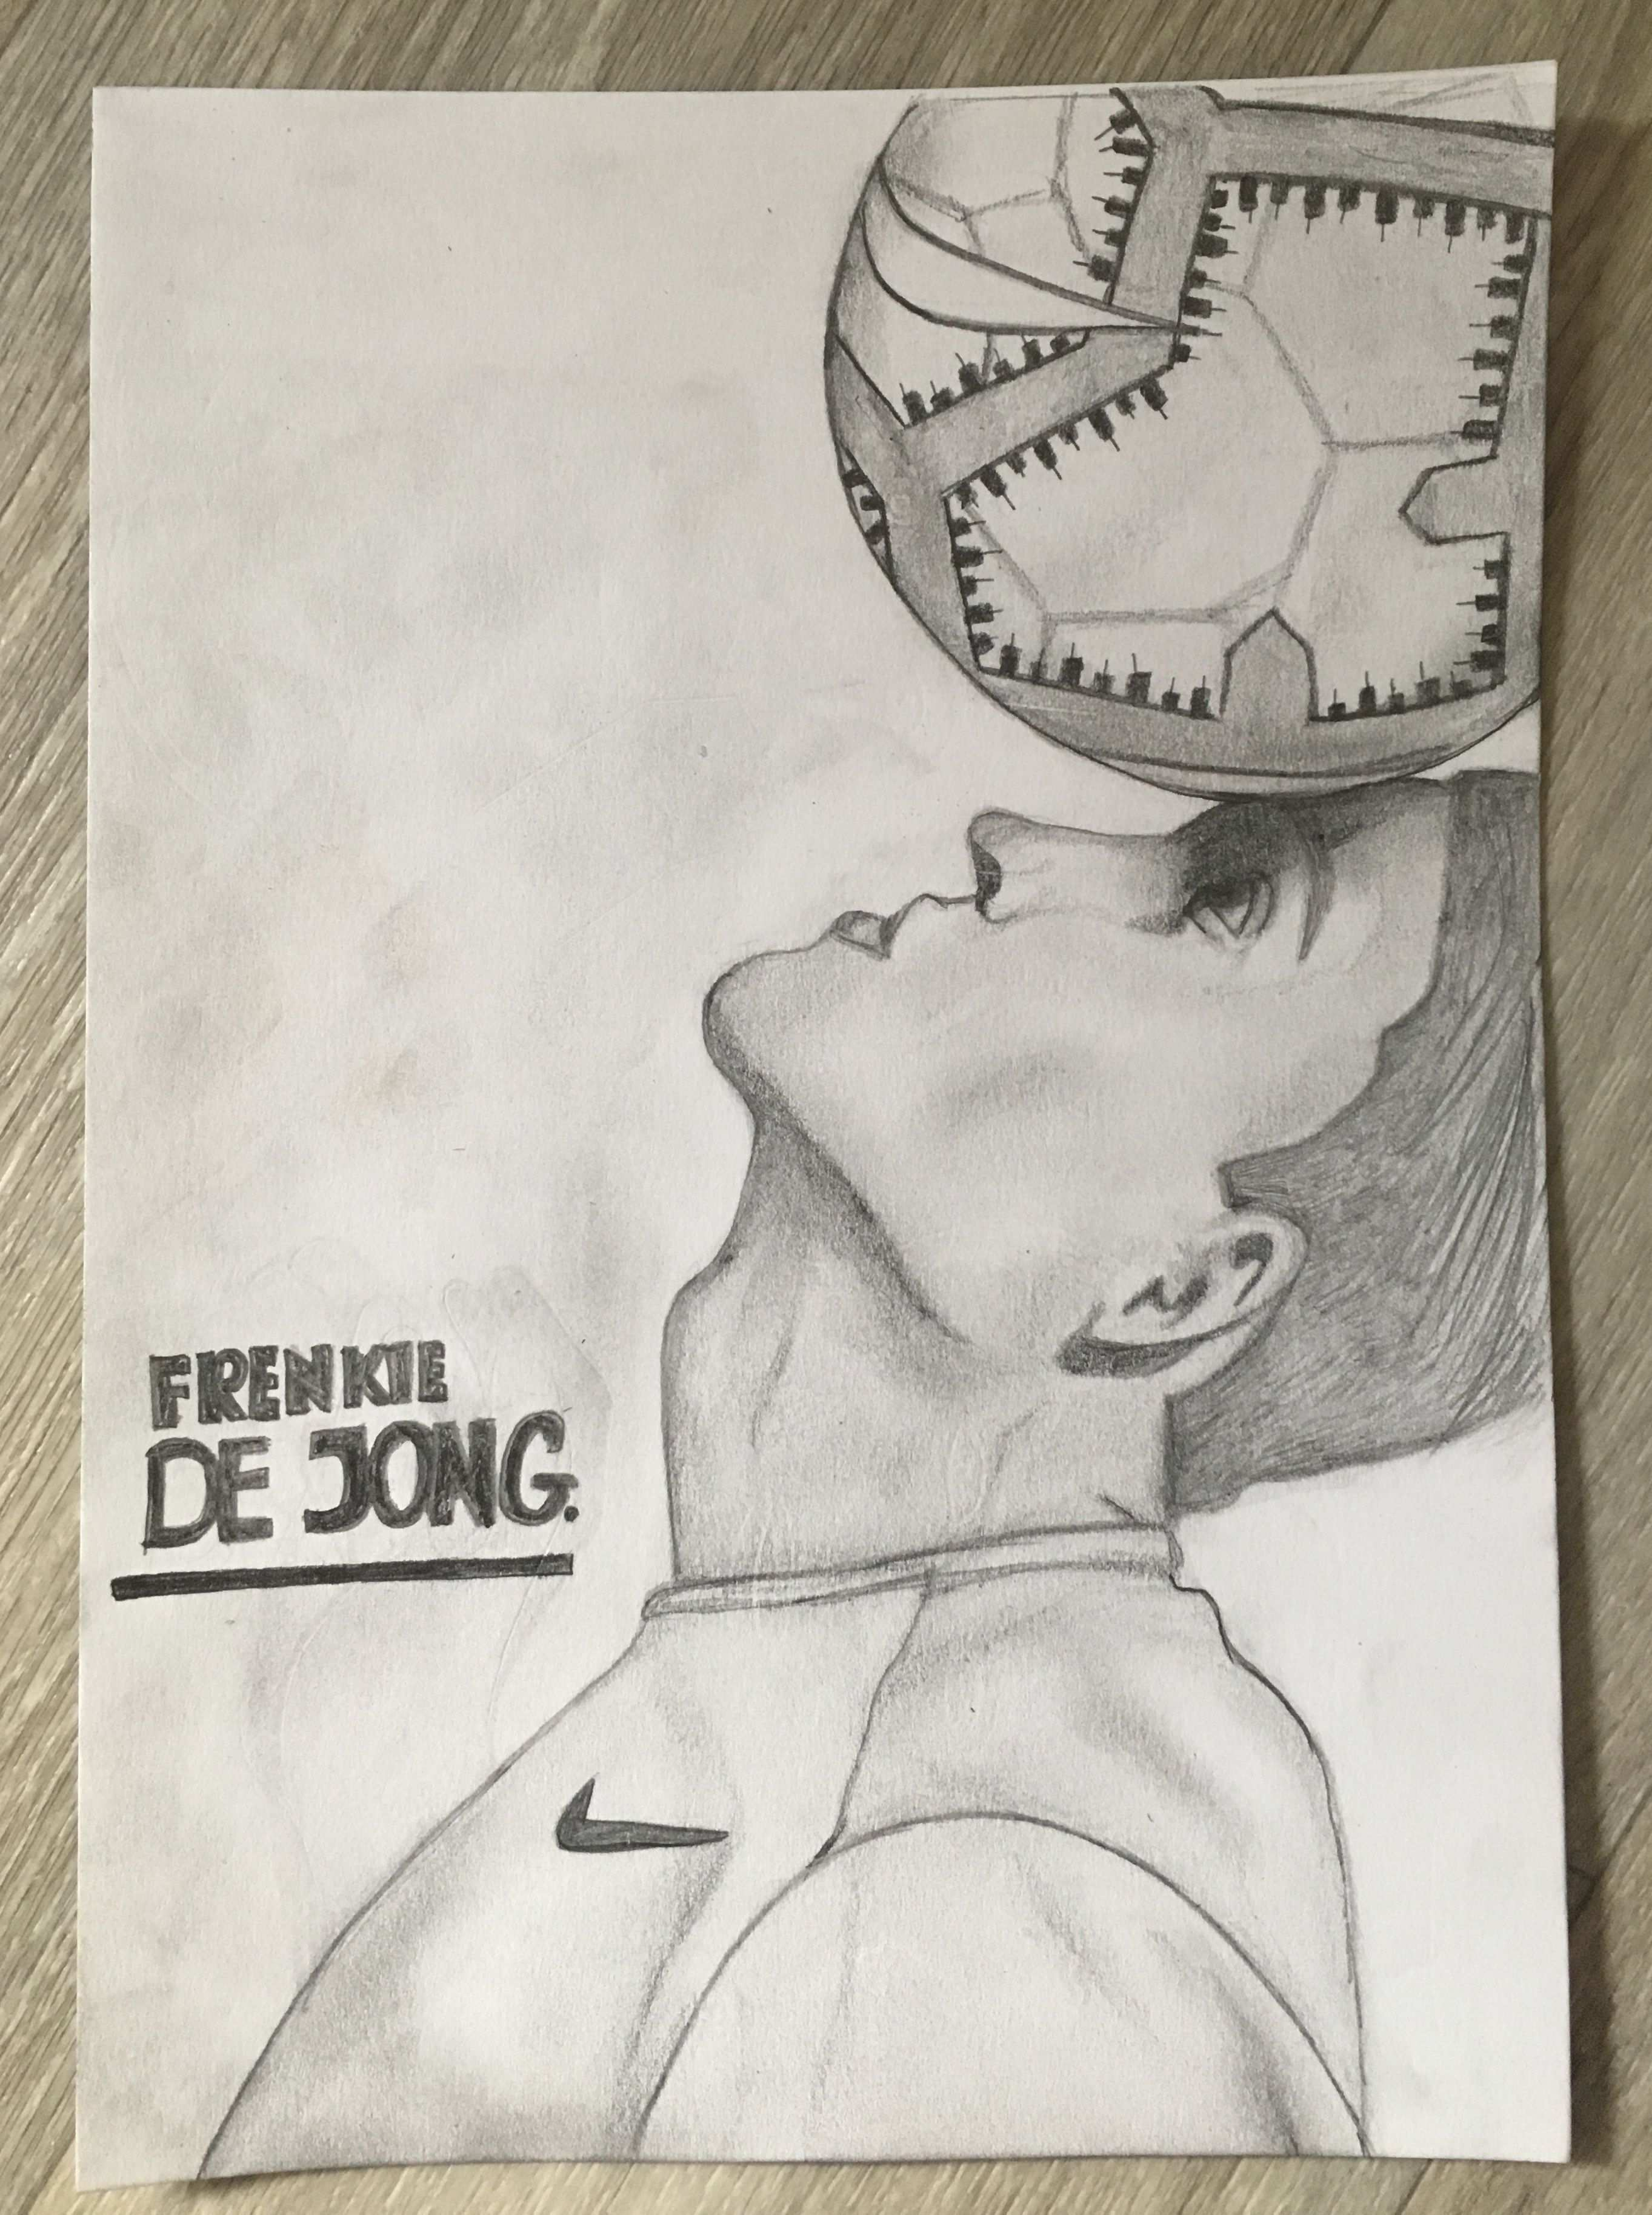 This Is Frenkie De Jong He Is A Football Player From Ajax And